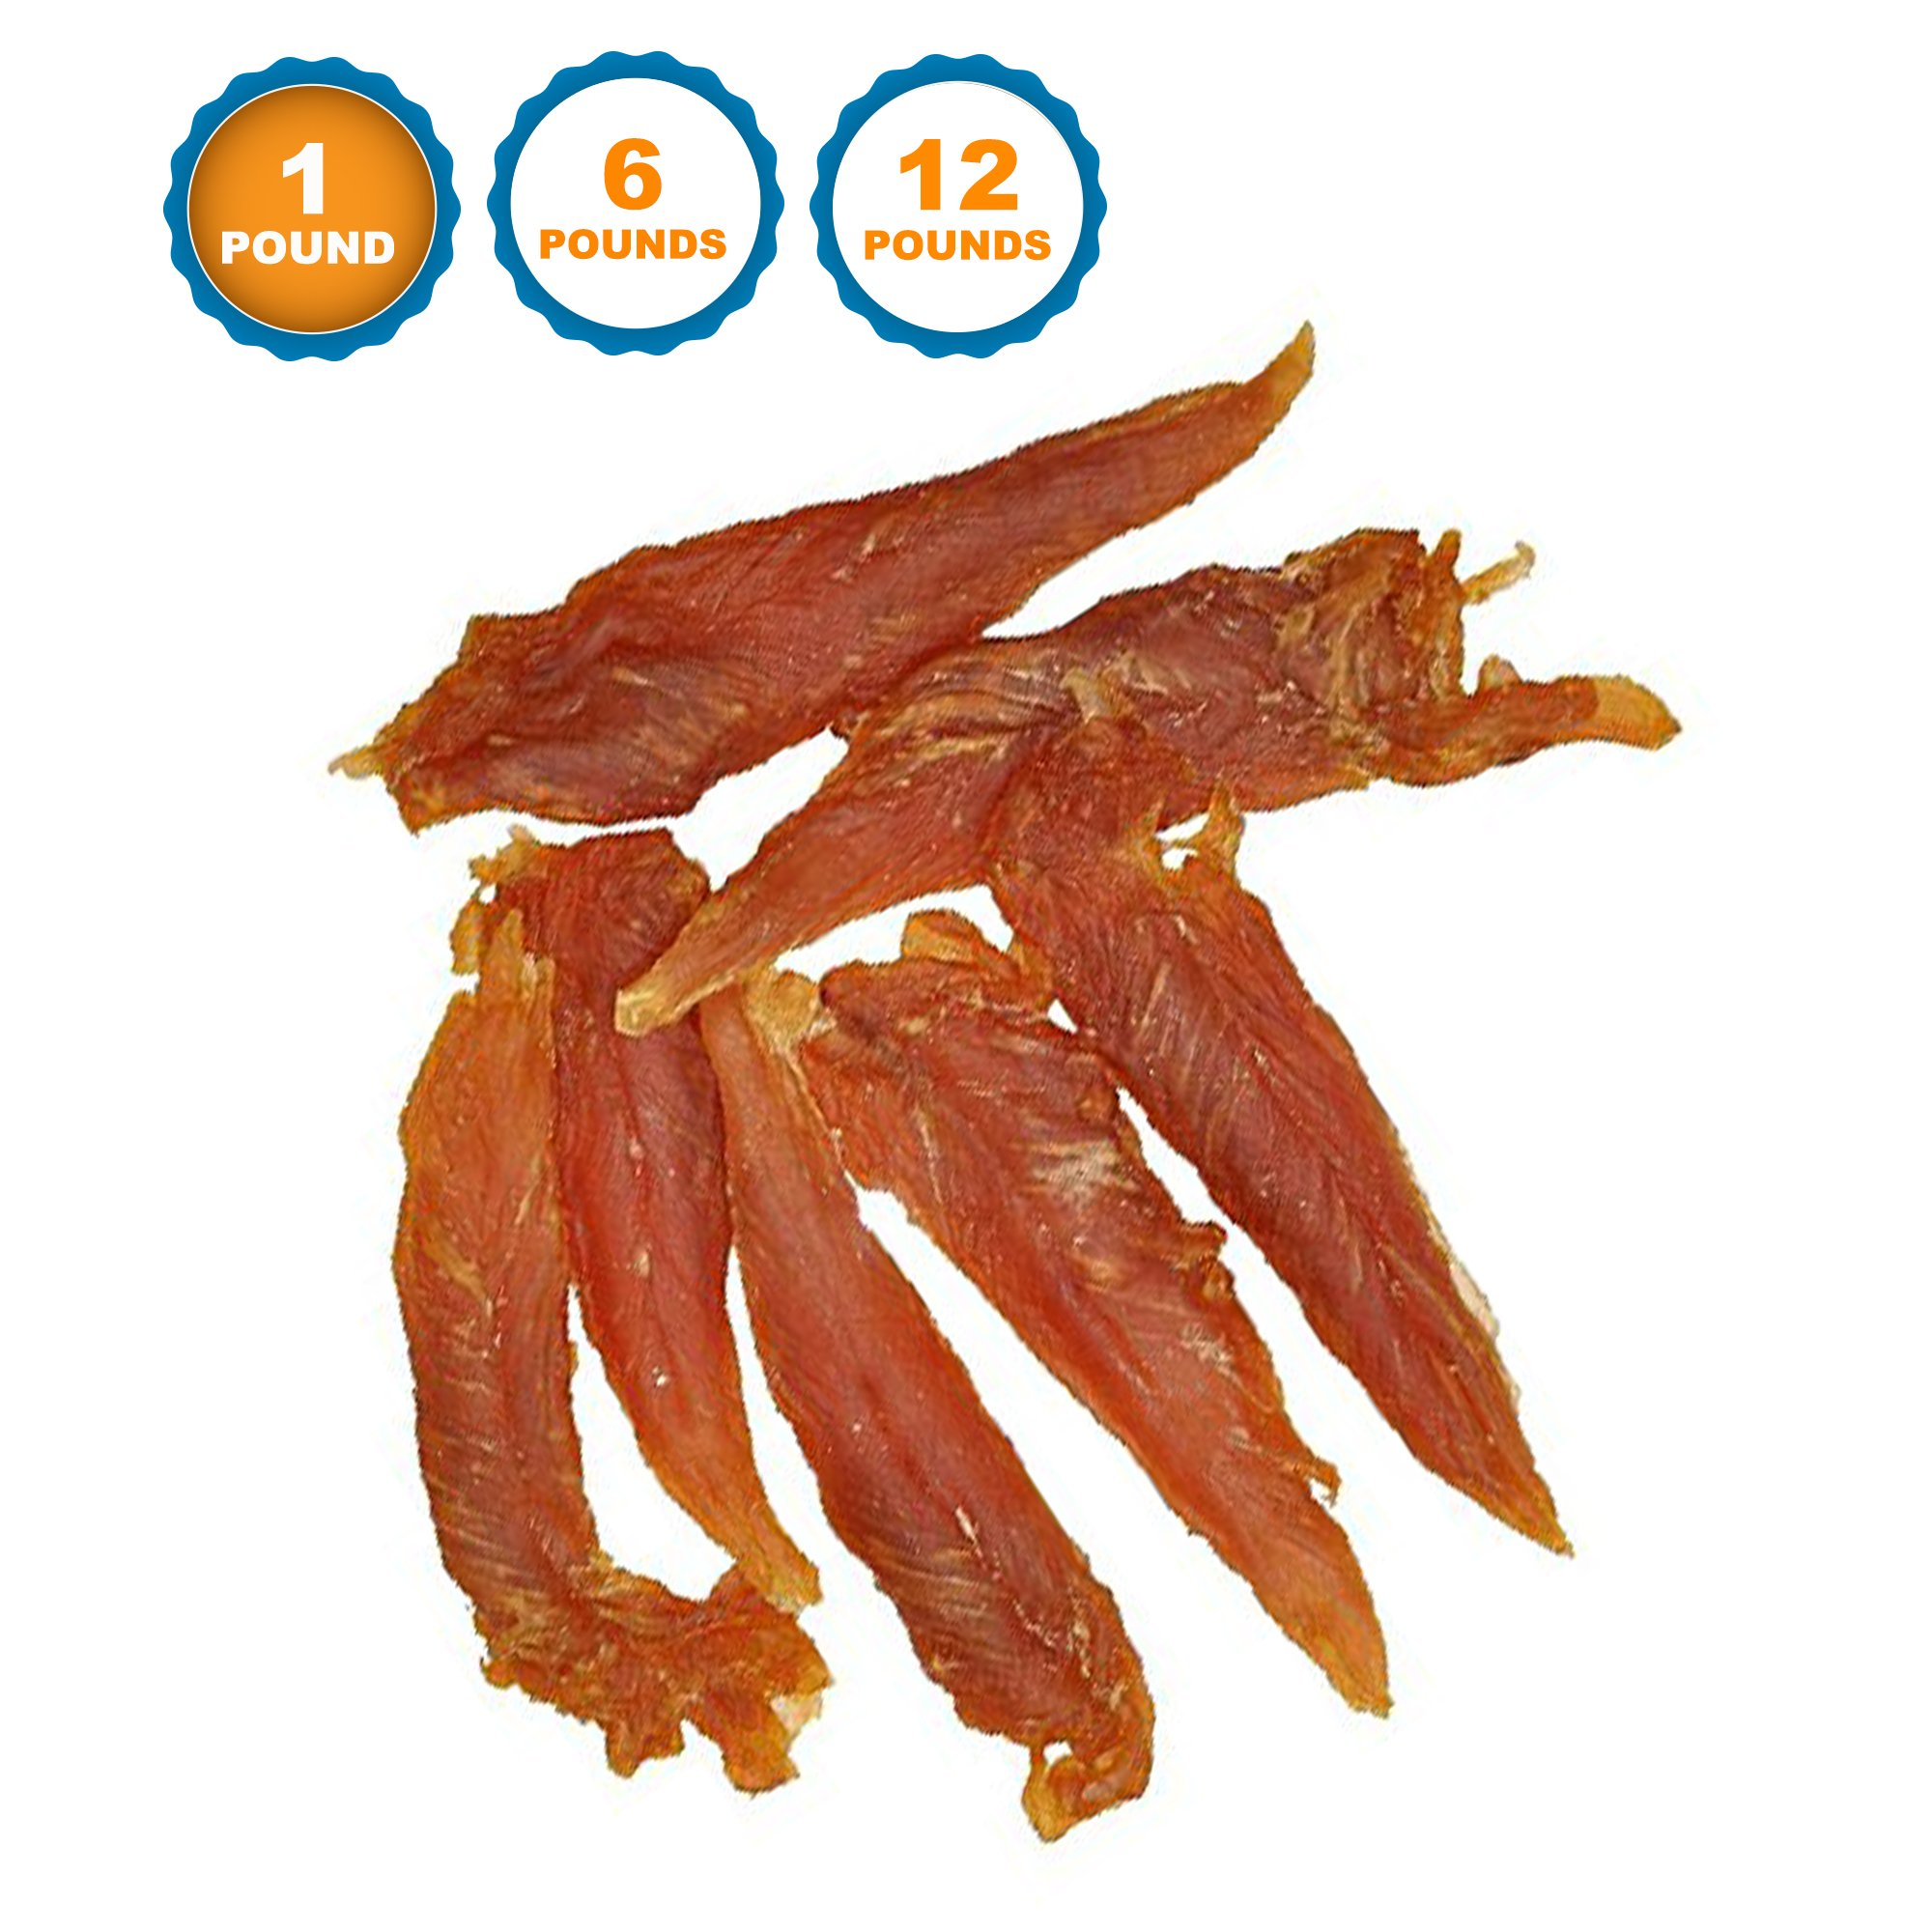 123 Treats Chicken Jerky Dog Treats Bulk (1 Pound) 100% All Natural, Healthy Snacks Dogs - No Fillers Additives – Digestible Delicious Chew Treats Pets – Grain Free by 123 Treats (Image #1)